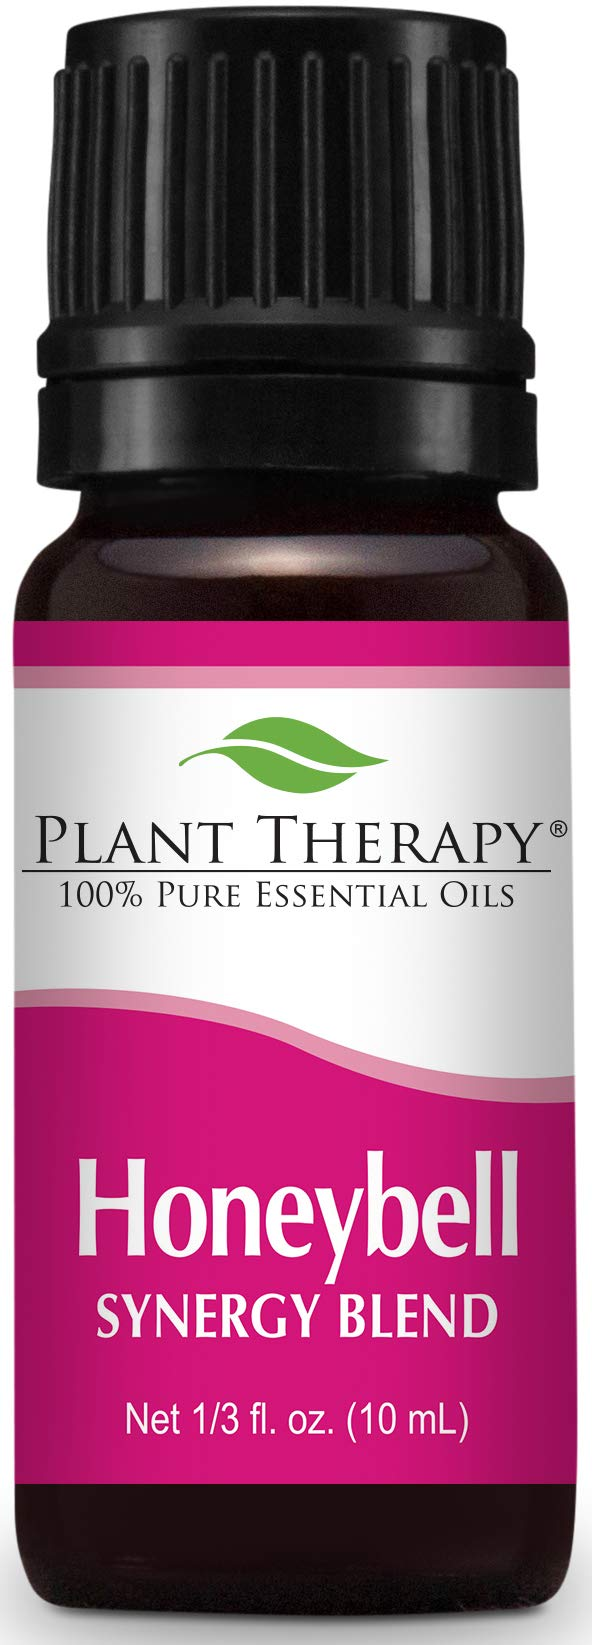 Plant Therapy - Plant Therapy Honeybell Synergy Essential Oil 10 mL (1/3 oz) 100% Pure, Undiluted, Therapeutic Grade